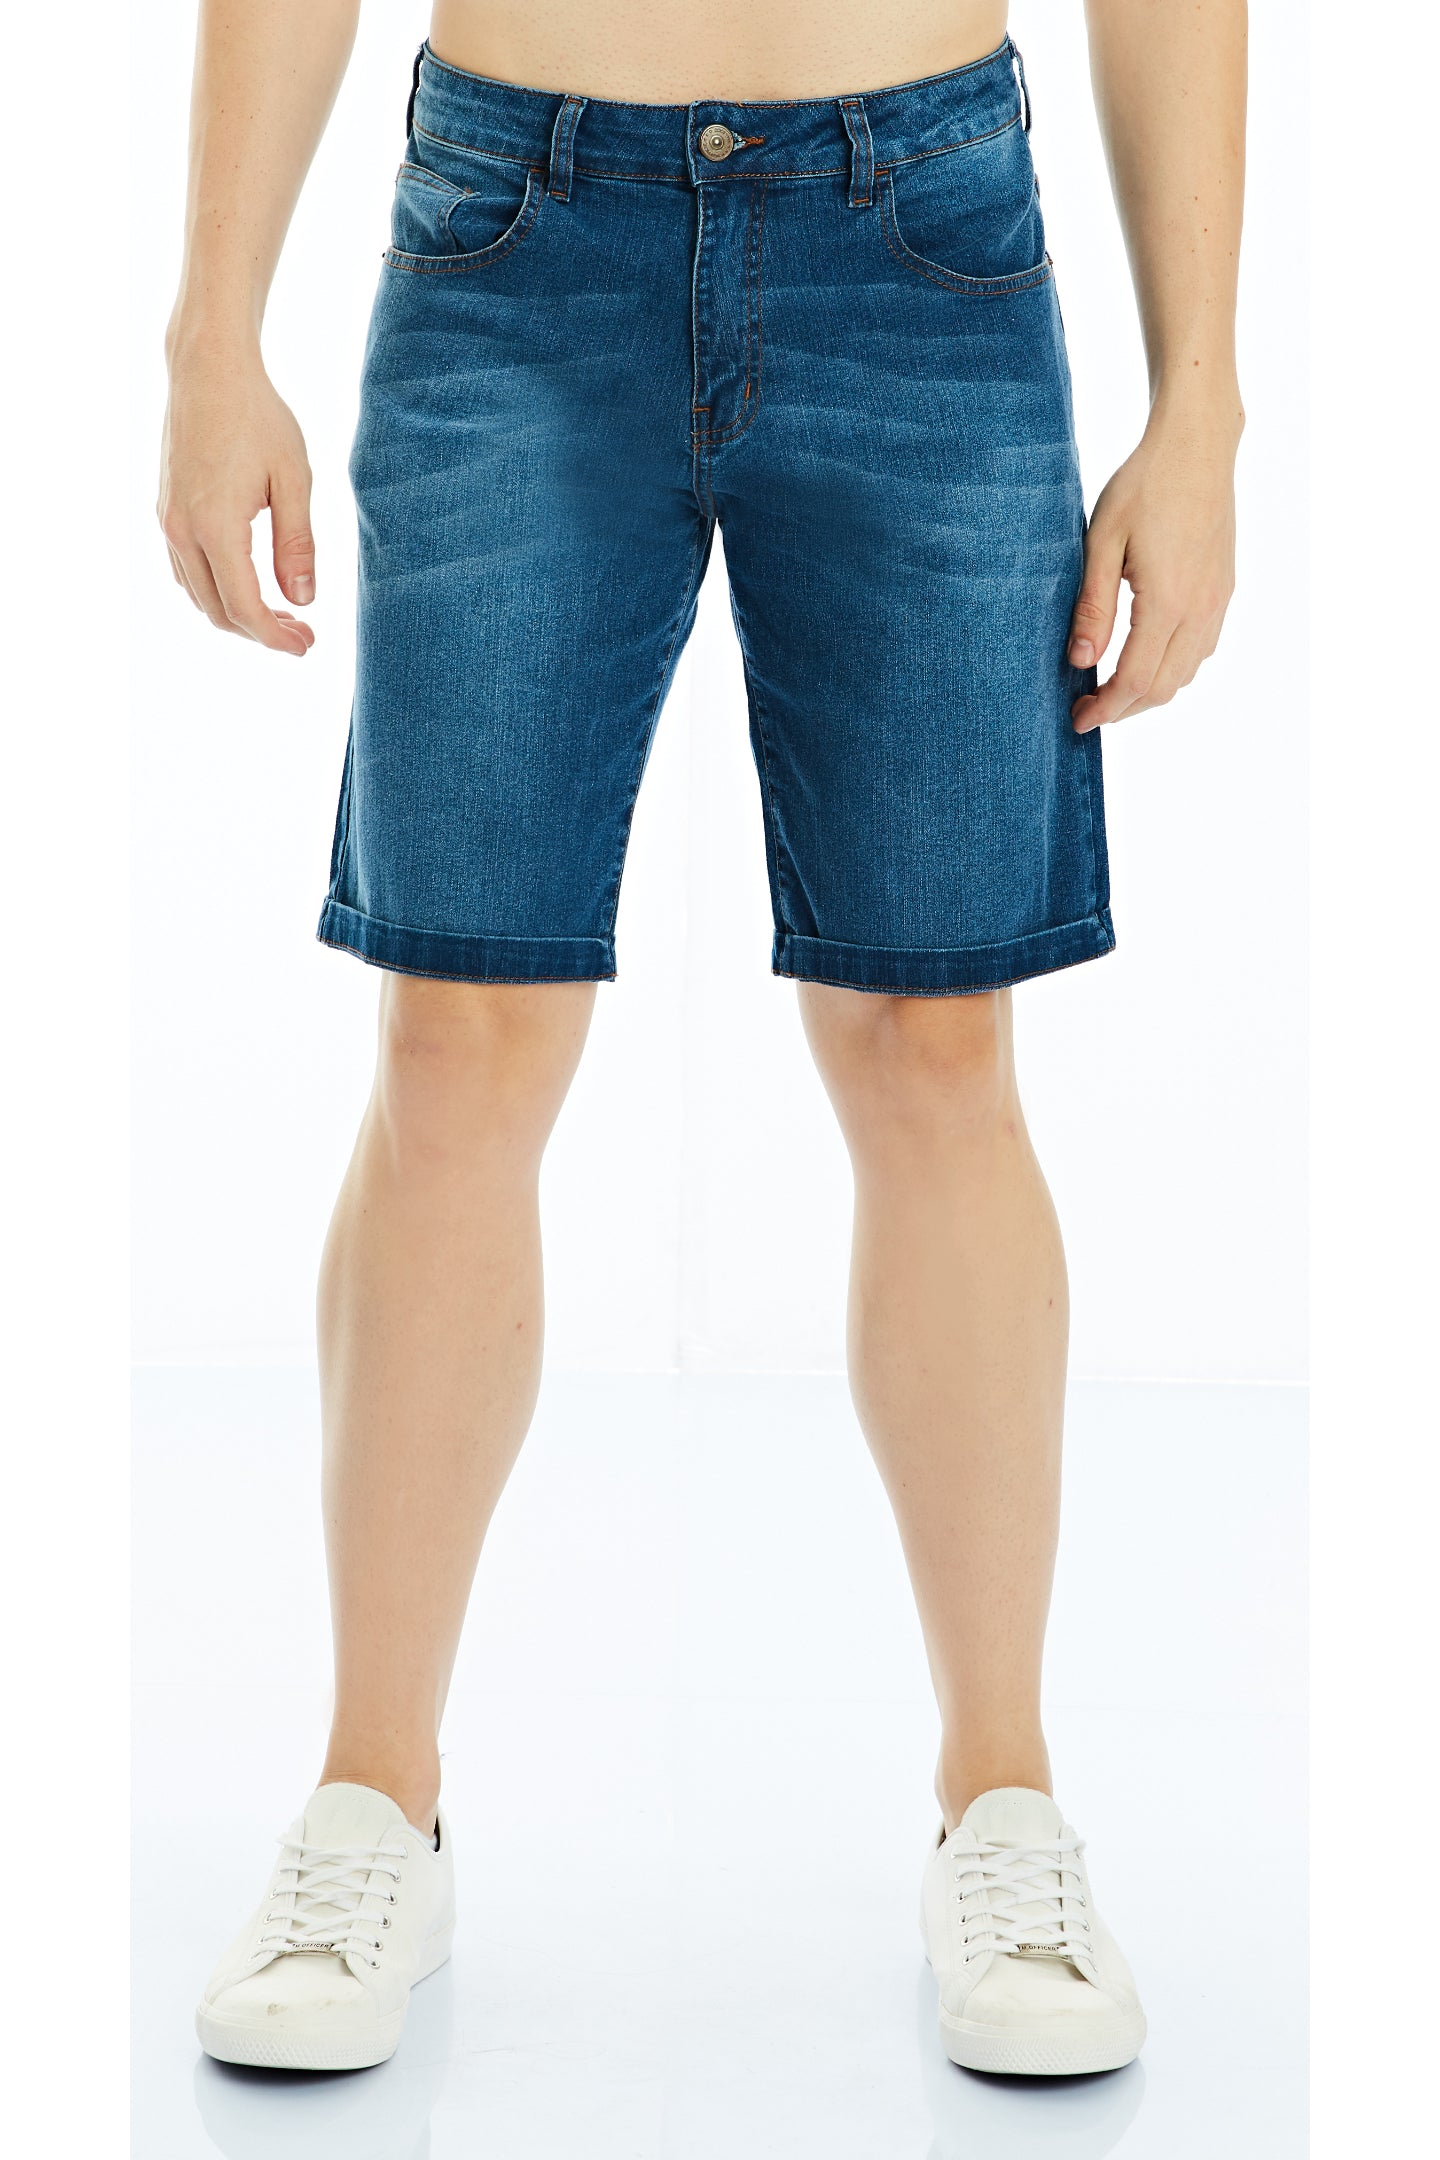 BERMUDA JEANS BLUE WASH